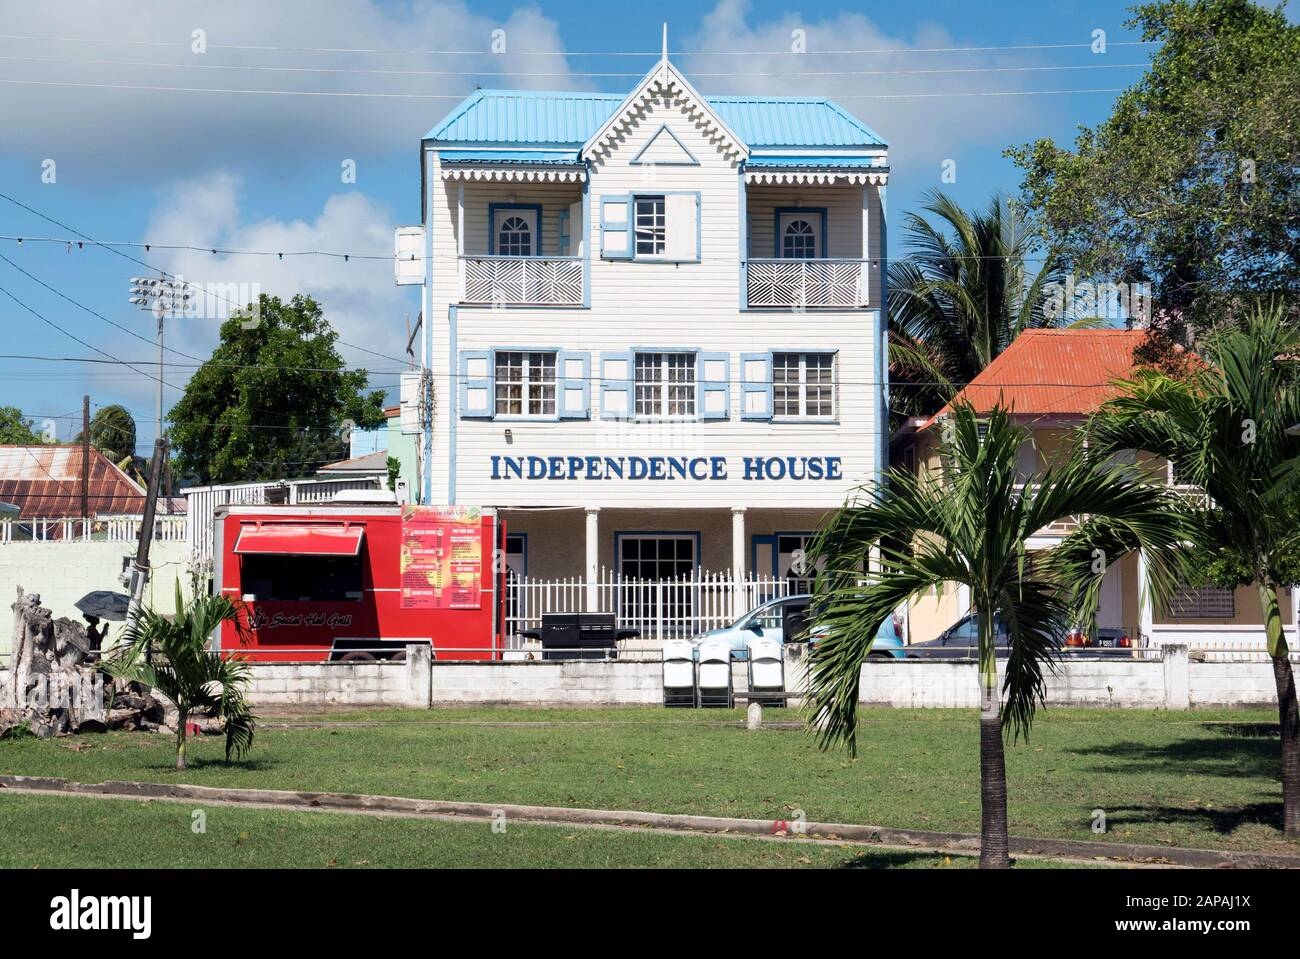 Typical building in Saint Kitts Caribbean situated in Independence Square Basseterre Stock Photo